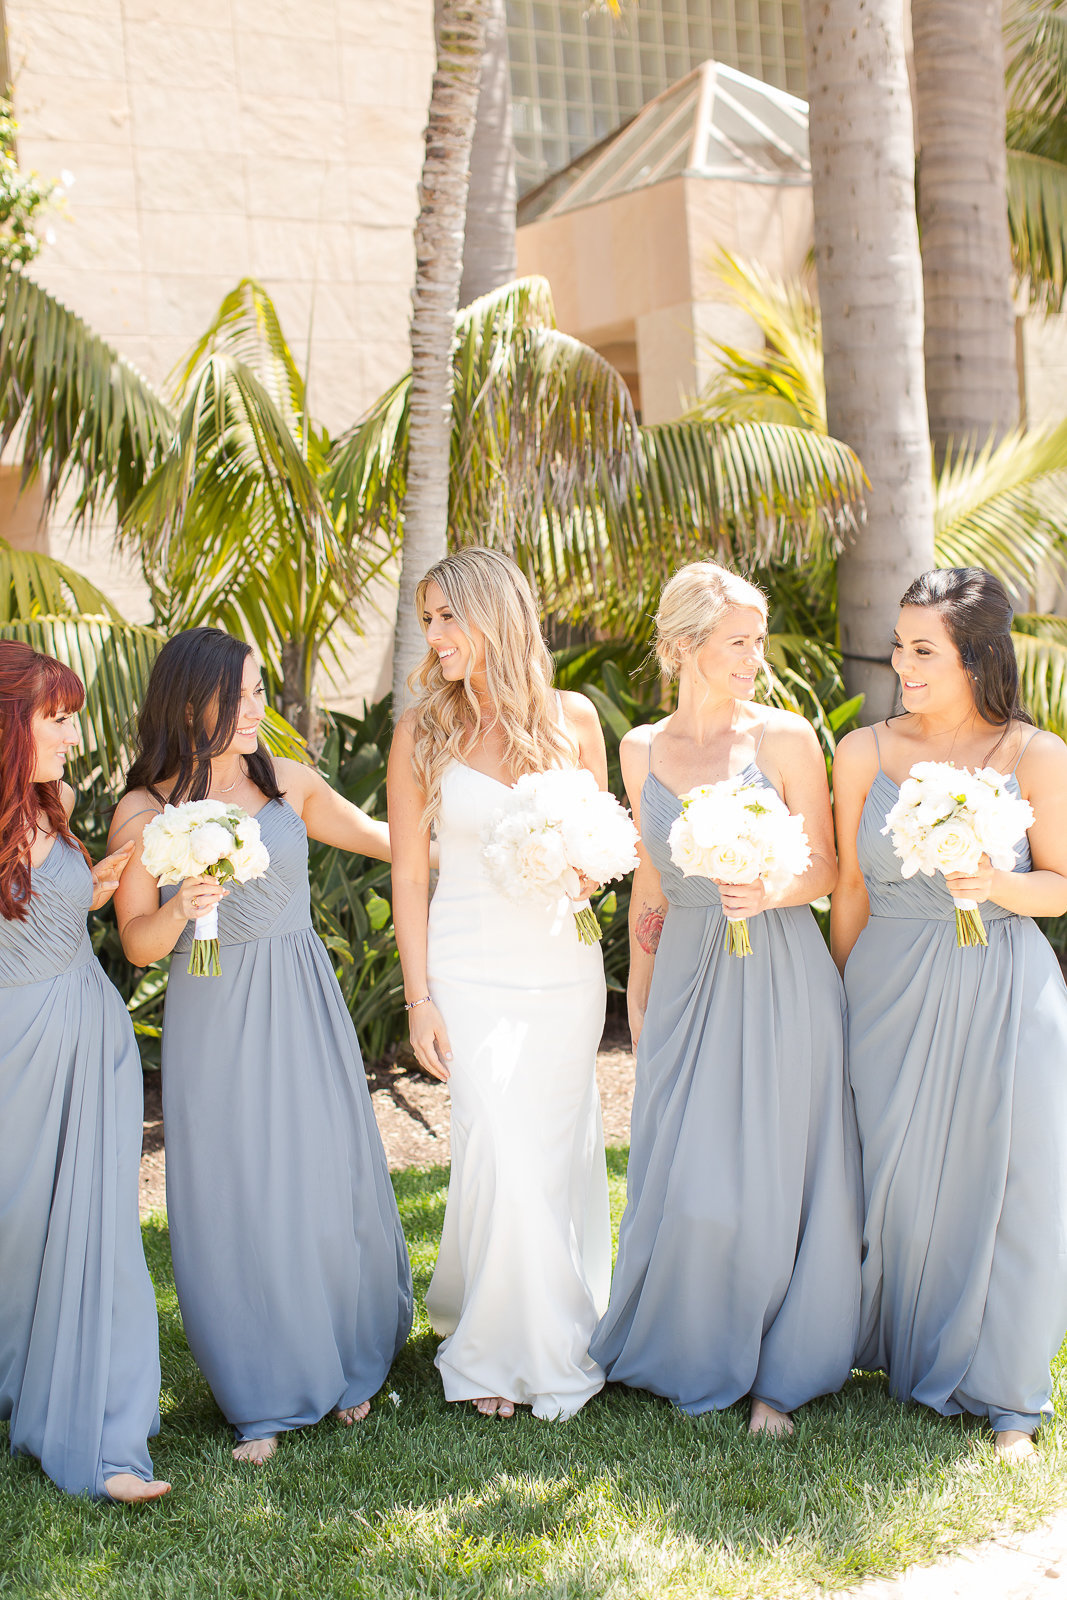 Newport Beach Caliornia Destination Wedding Theresa Bridget Photography-1-4